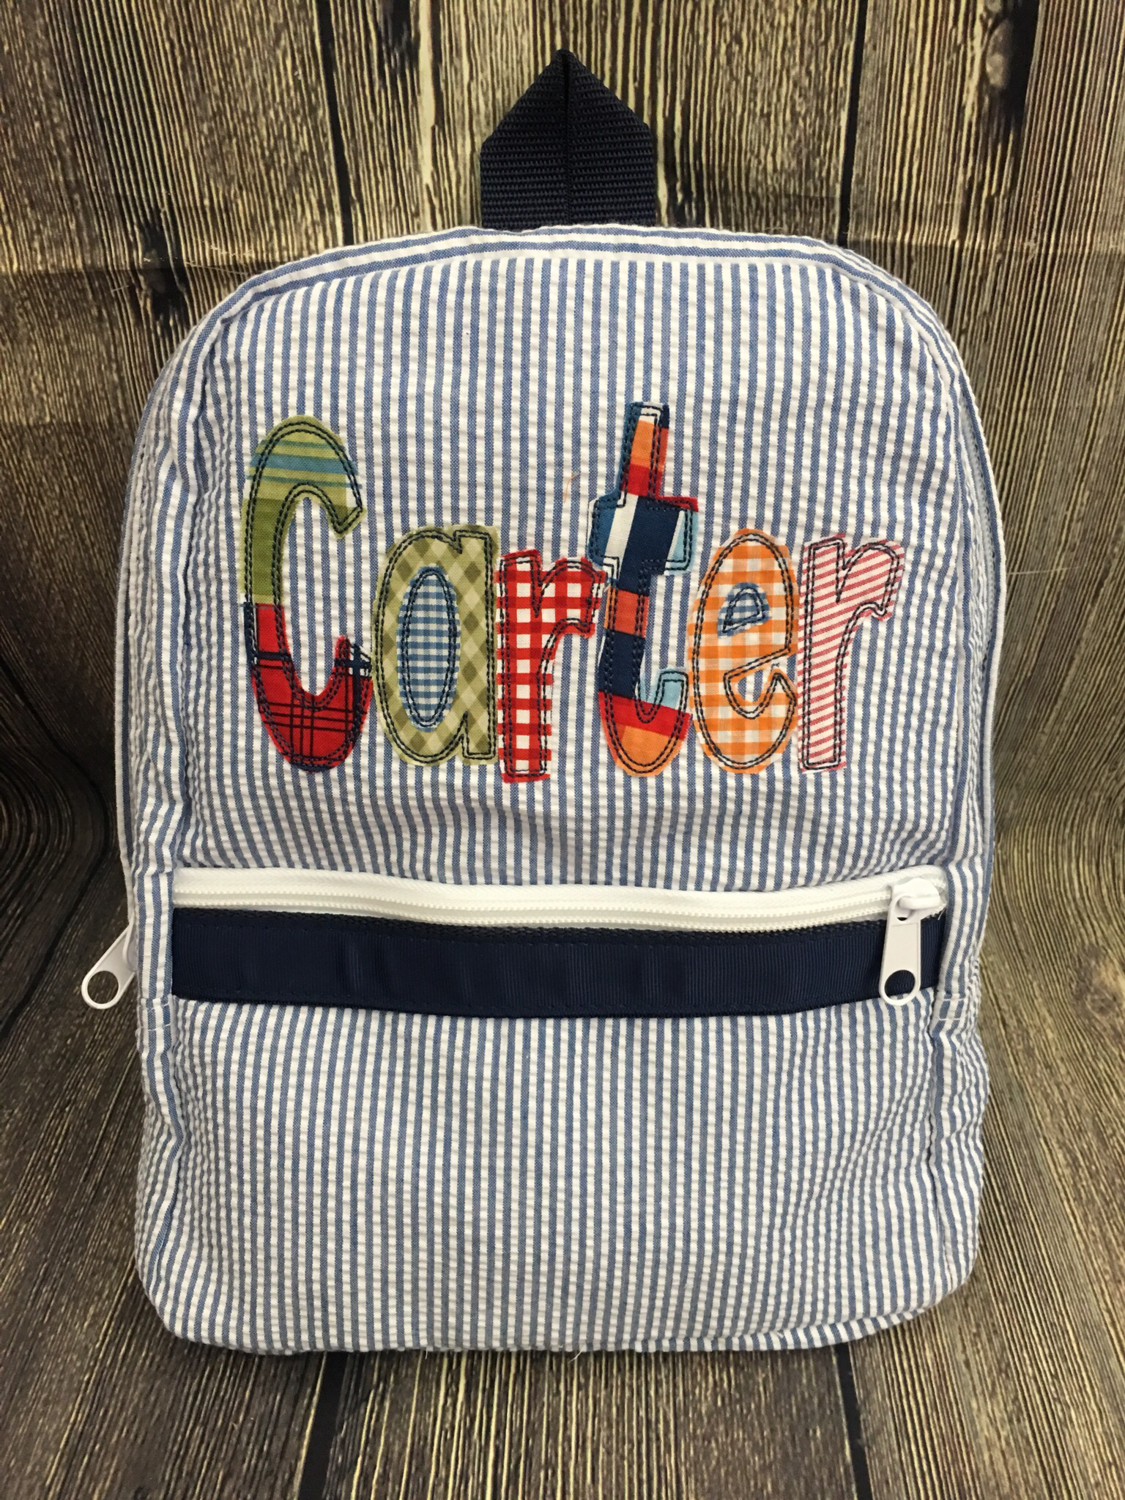 Appliqued (Oh Mint! brand) Seersucker backpack - Small Toddler 664d9a5eea141